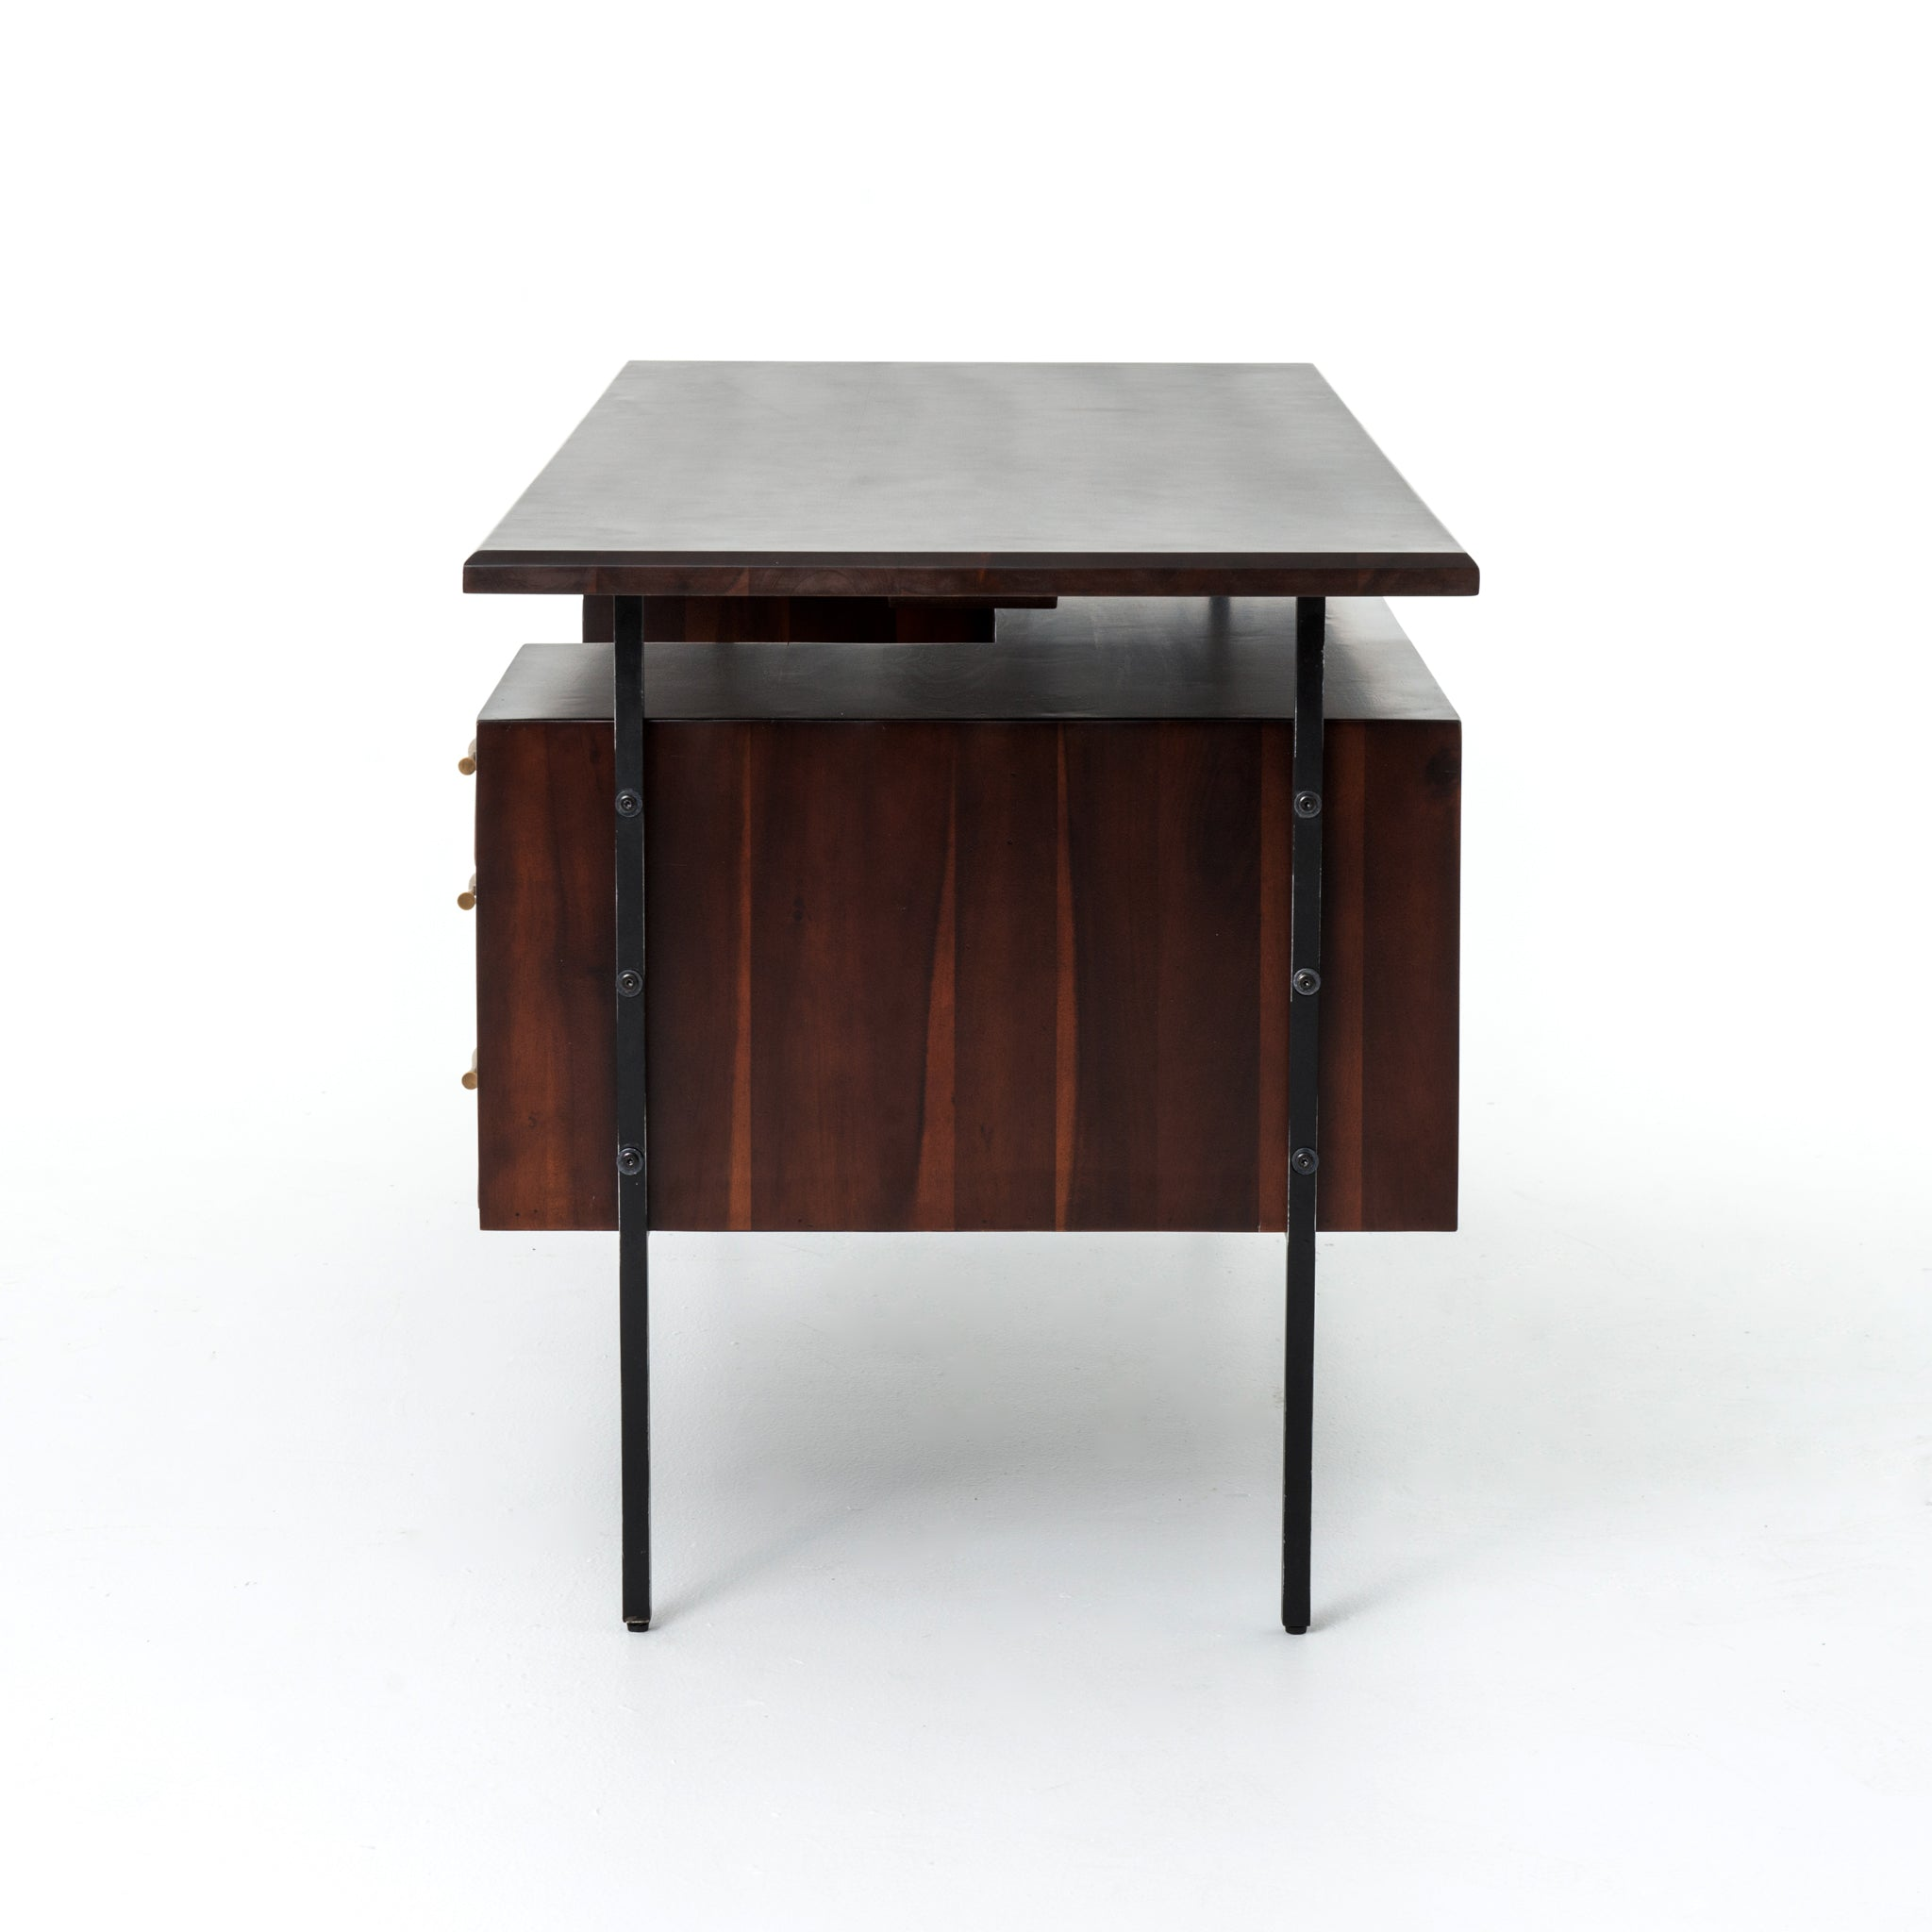 Modern Floating Top Lawyers Desk - Furniture on Main